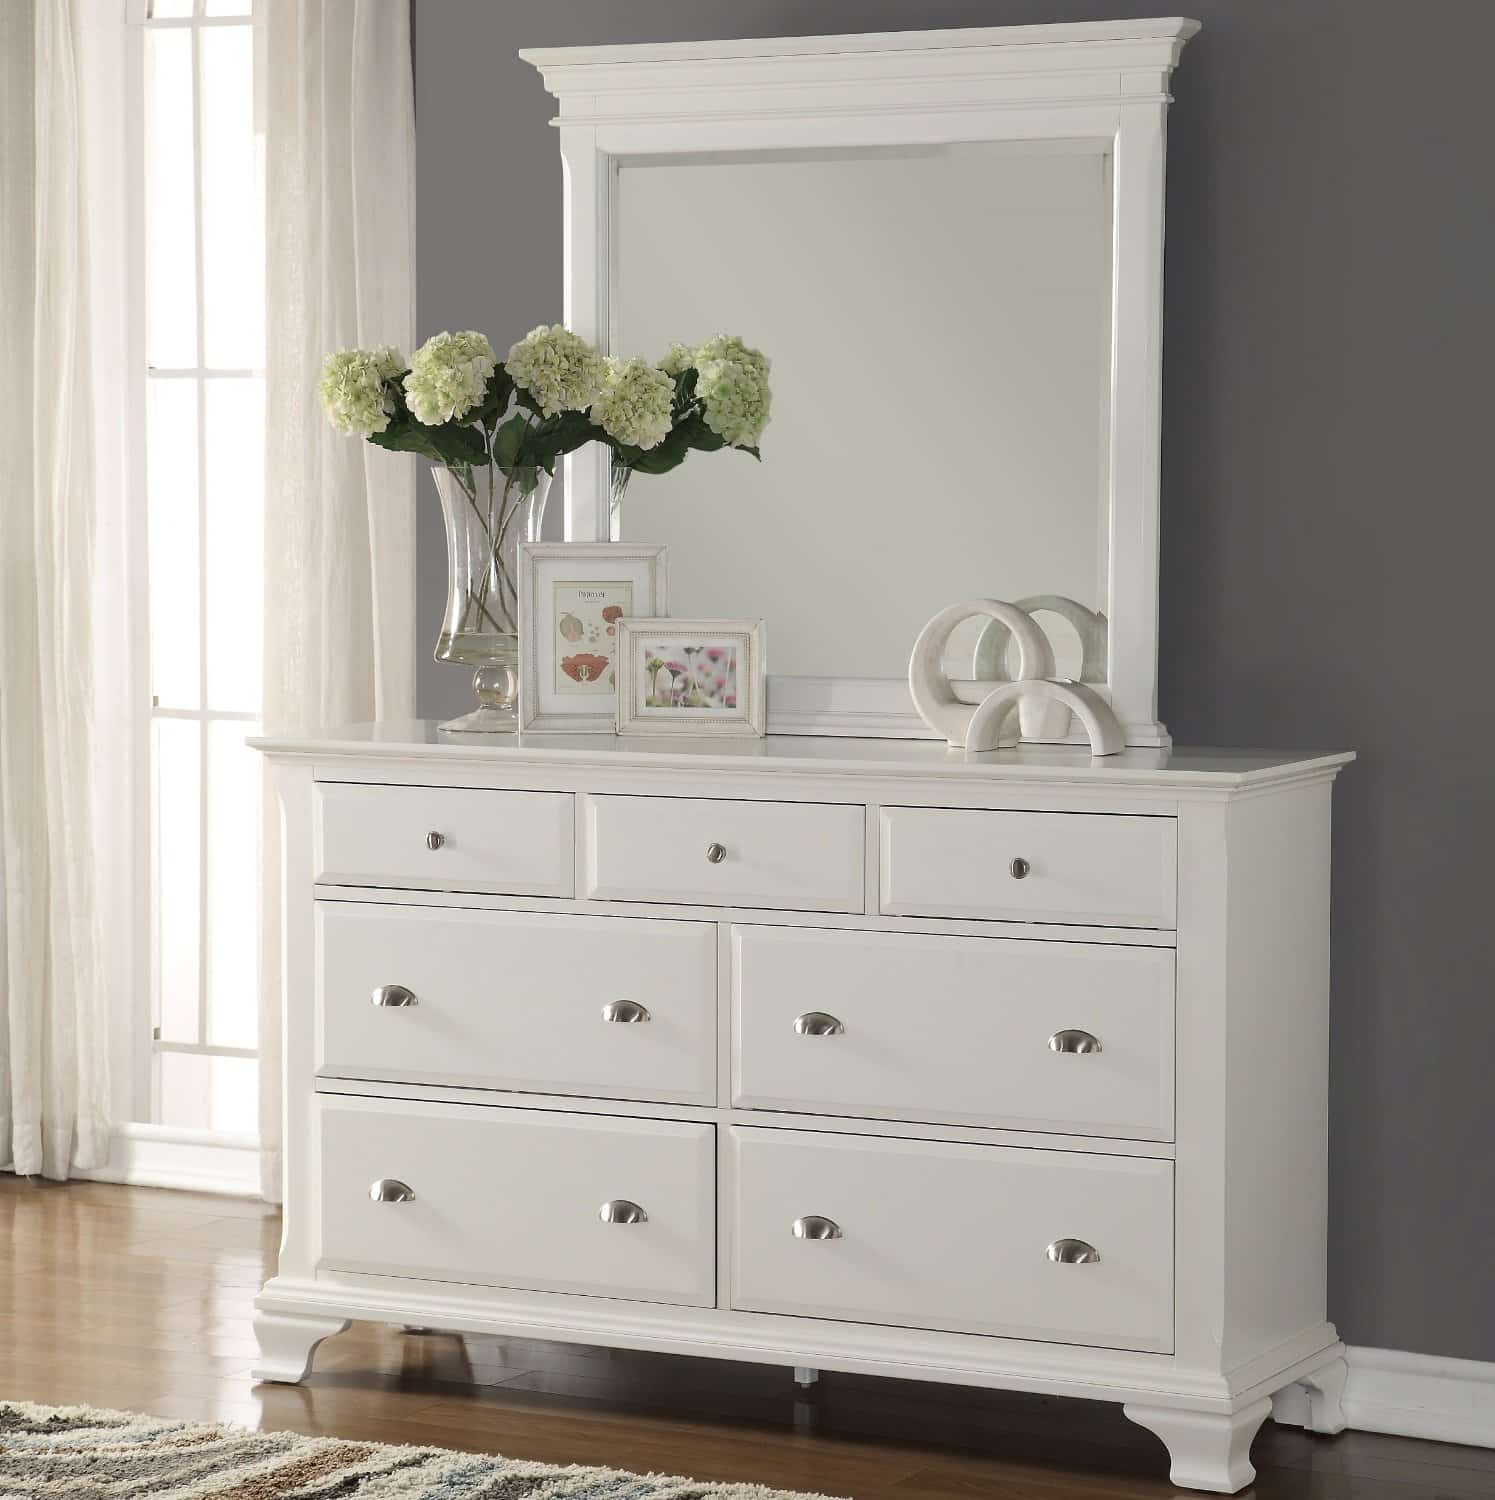 Dressers For Small Bedrooms: White Bedroom Dressers